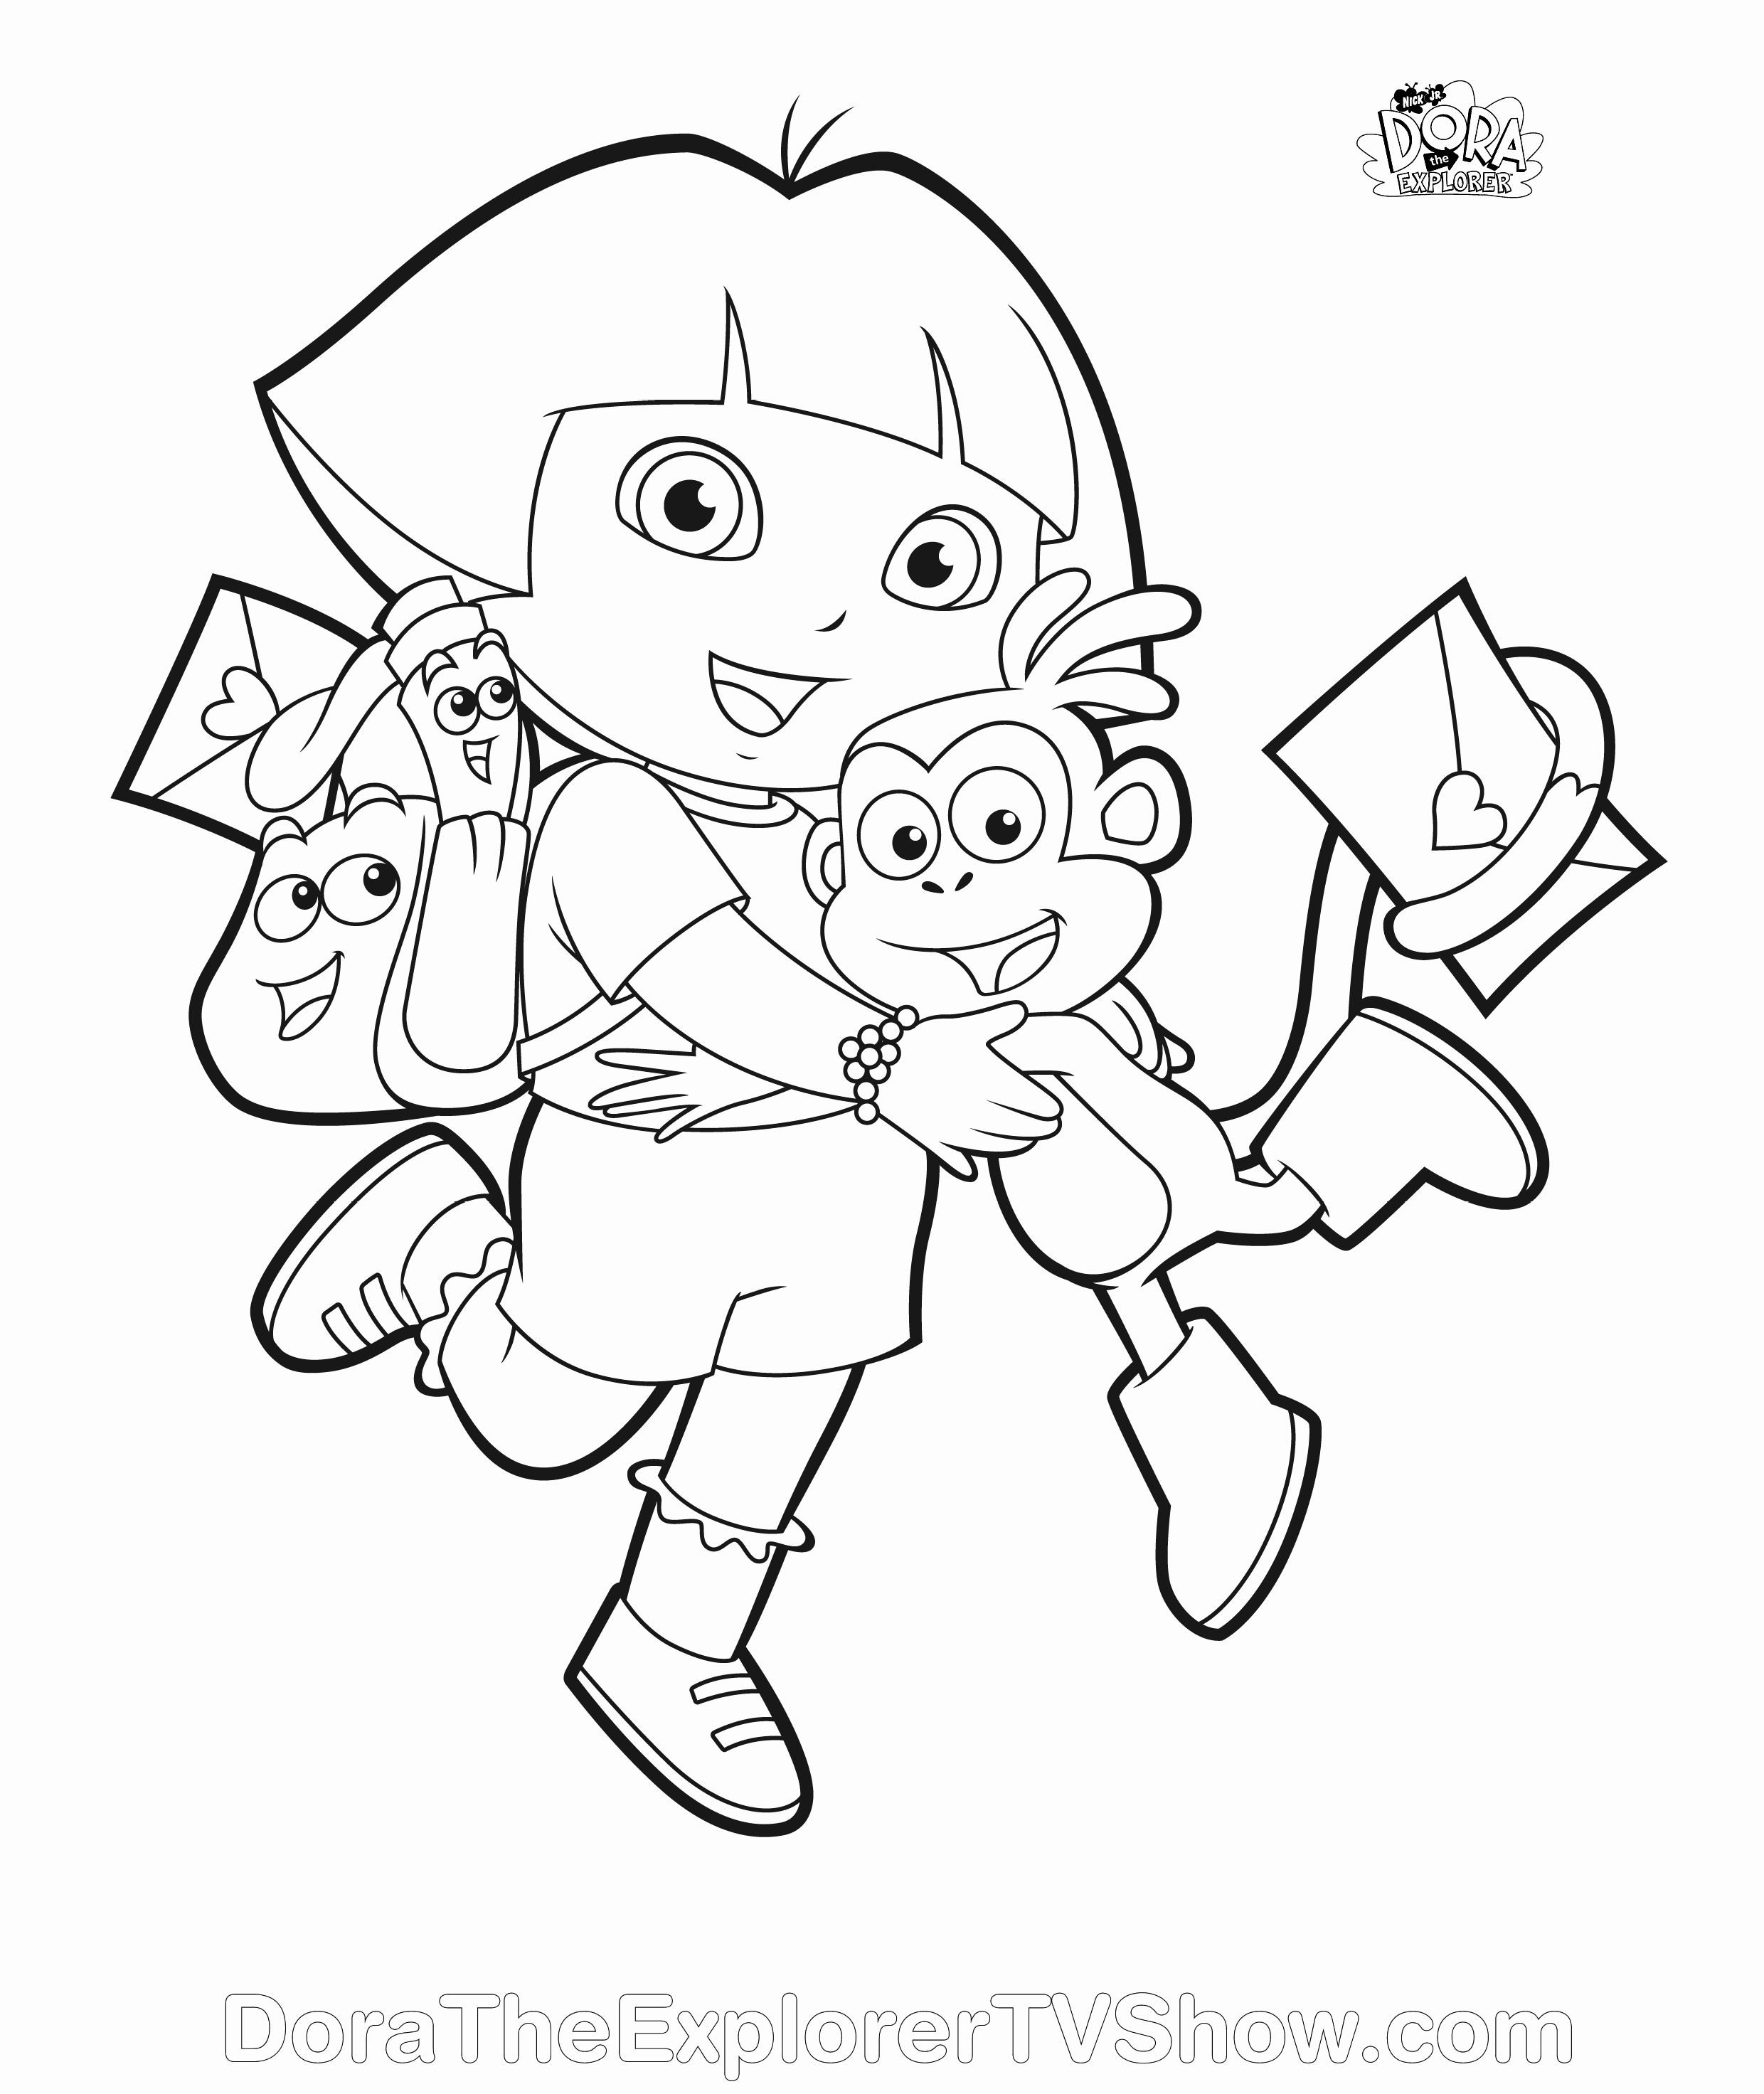 Dora coloring page | Free Printable Coloring Pages | 2944x2480